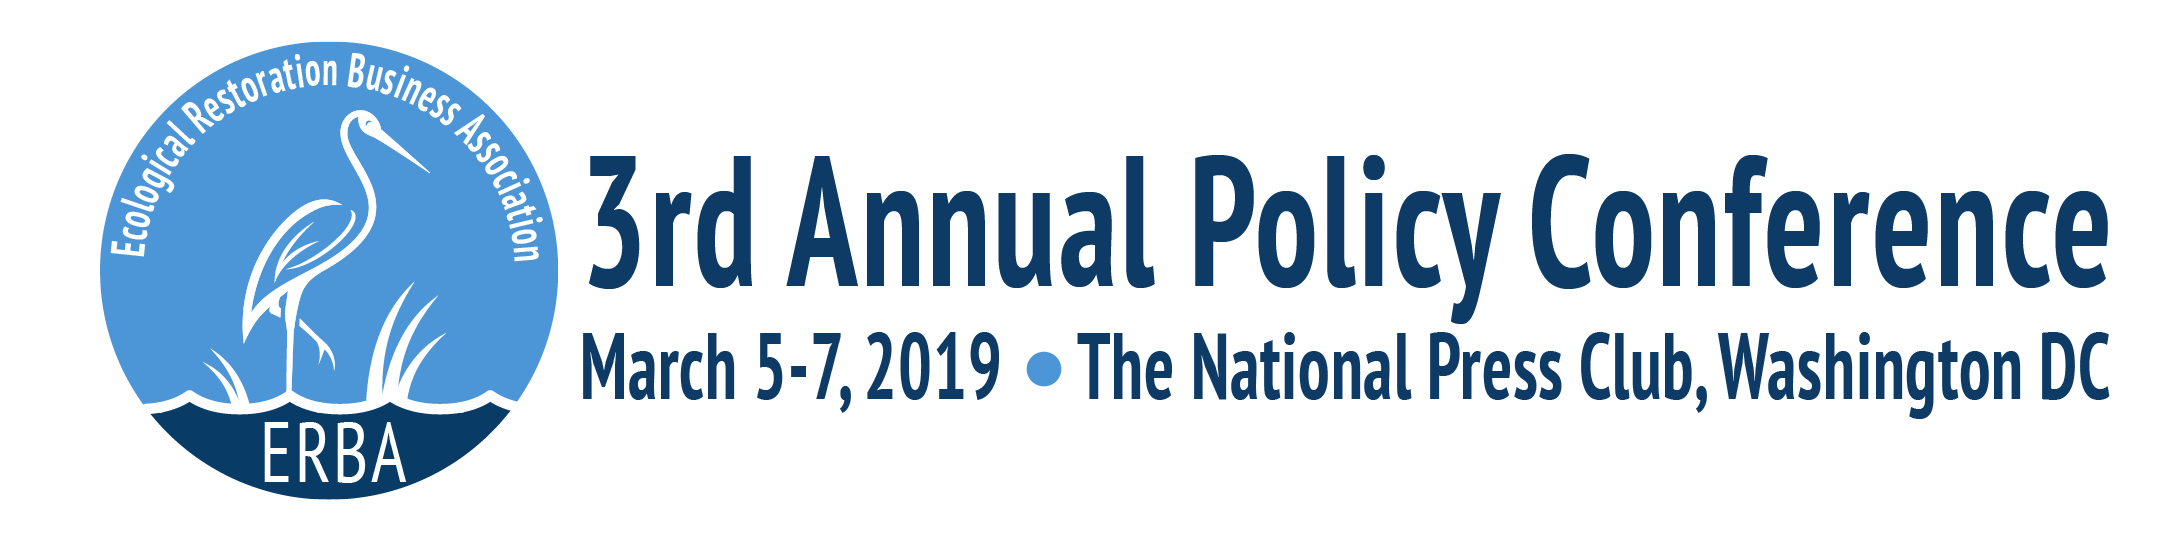 ERBA's 3rd Annual Policy Conference